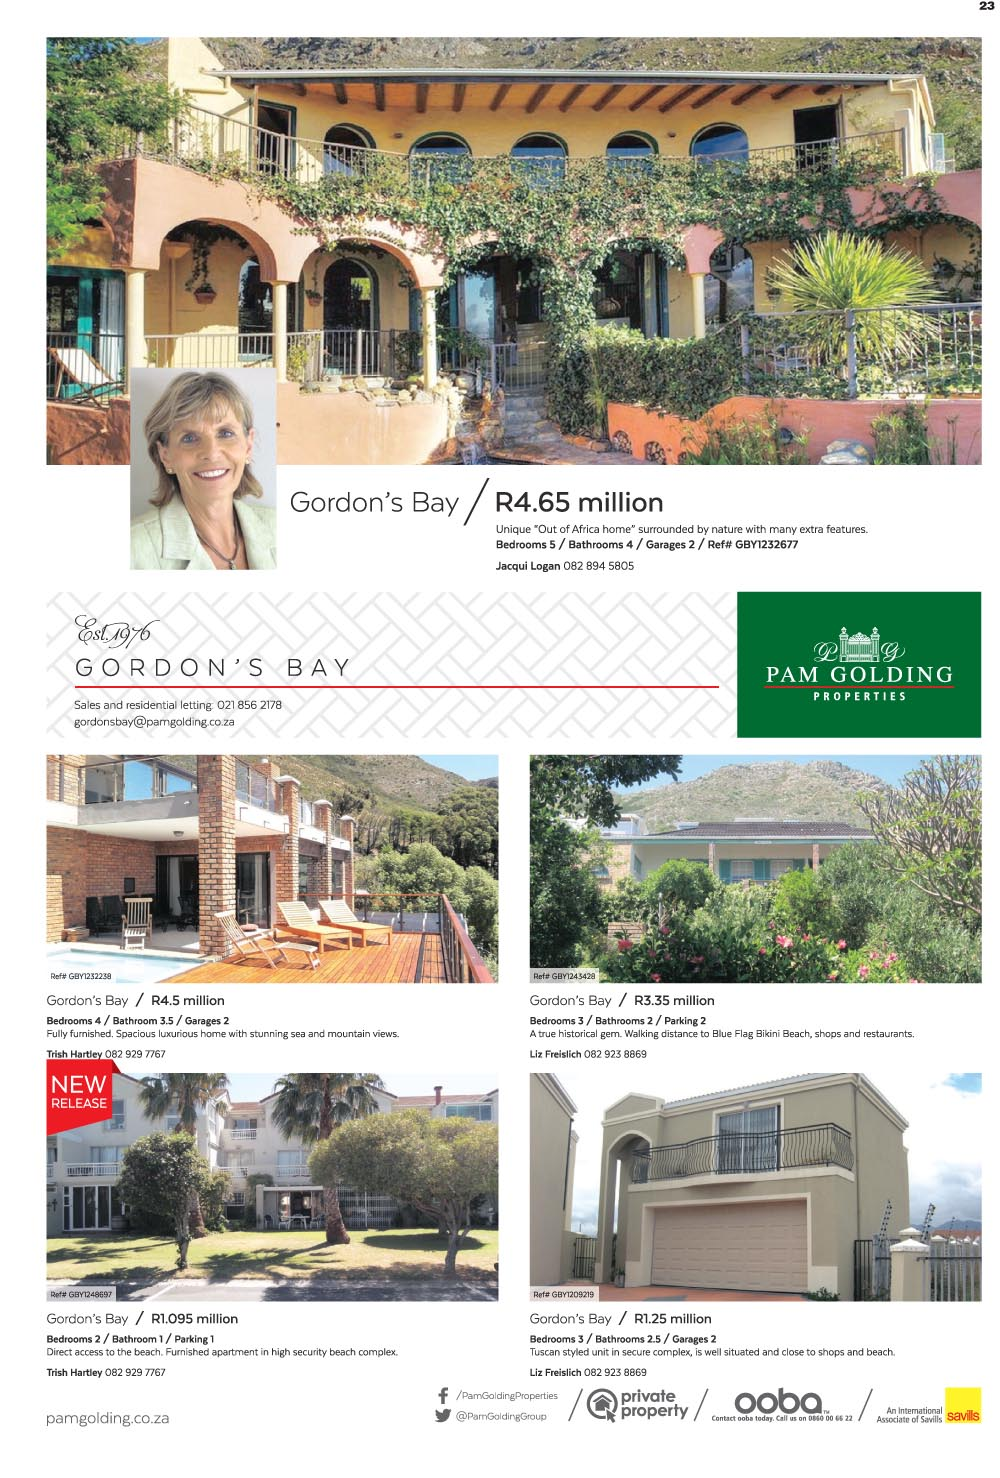 You are browsing images from the article: Property Selection December 16 2015